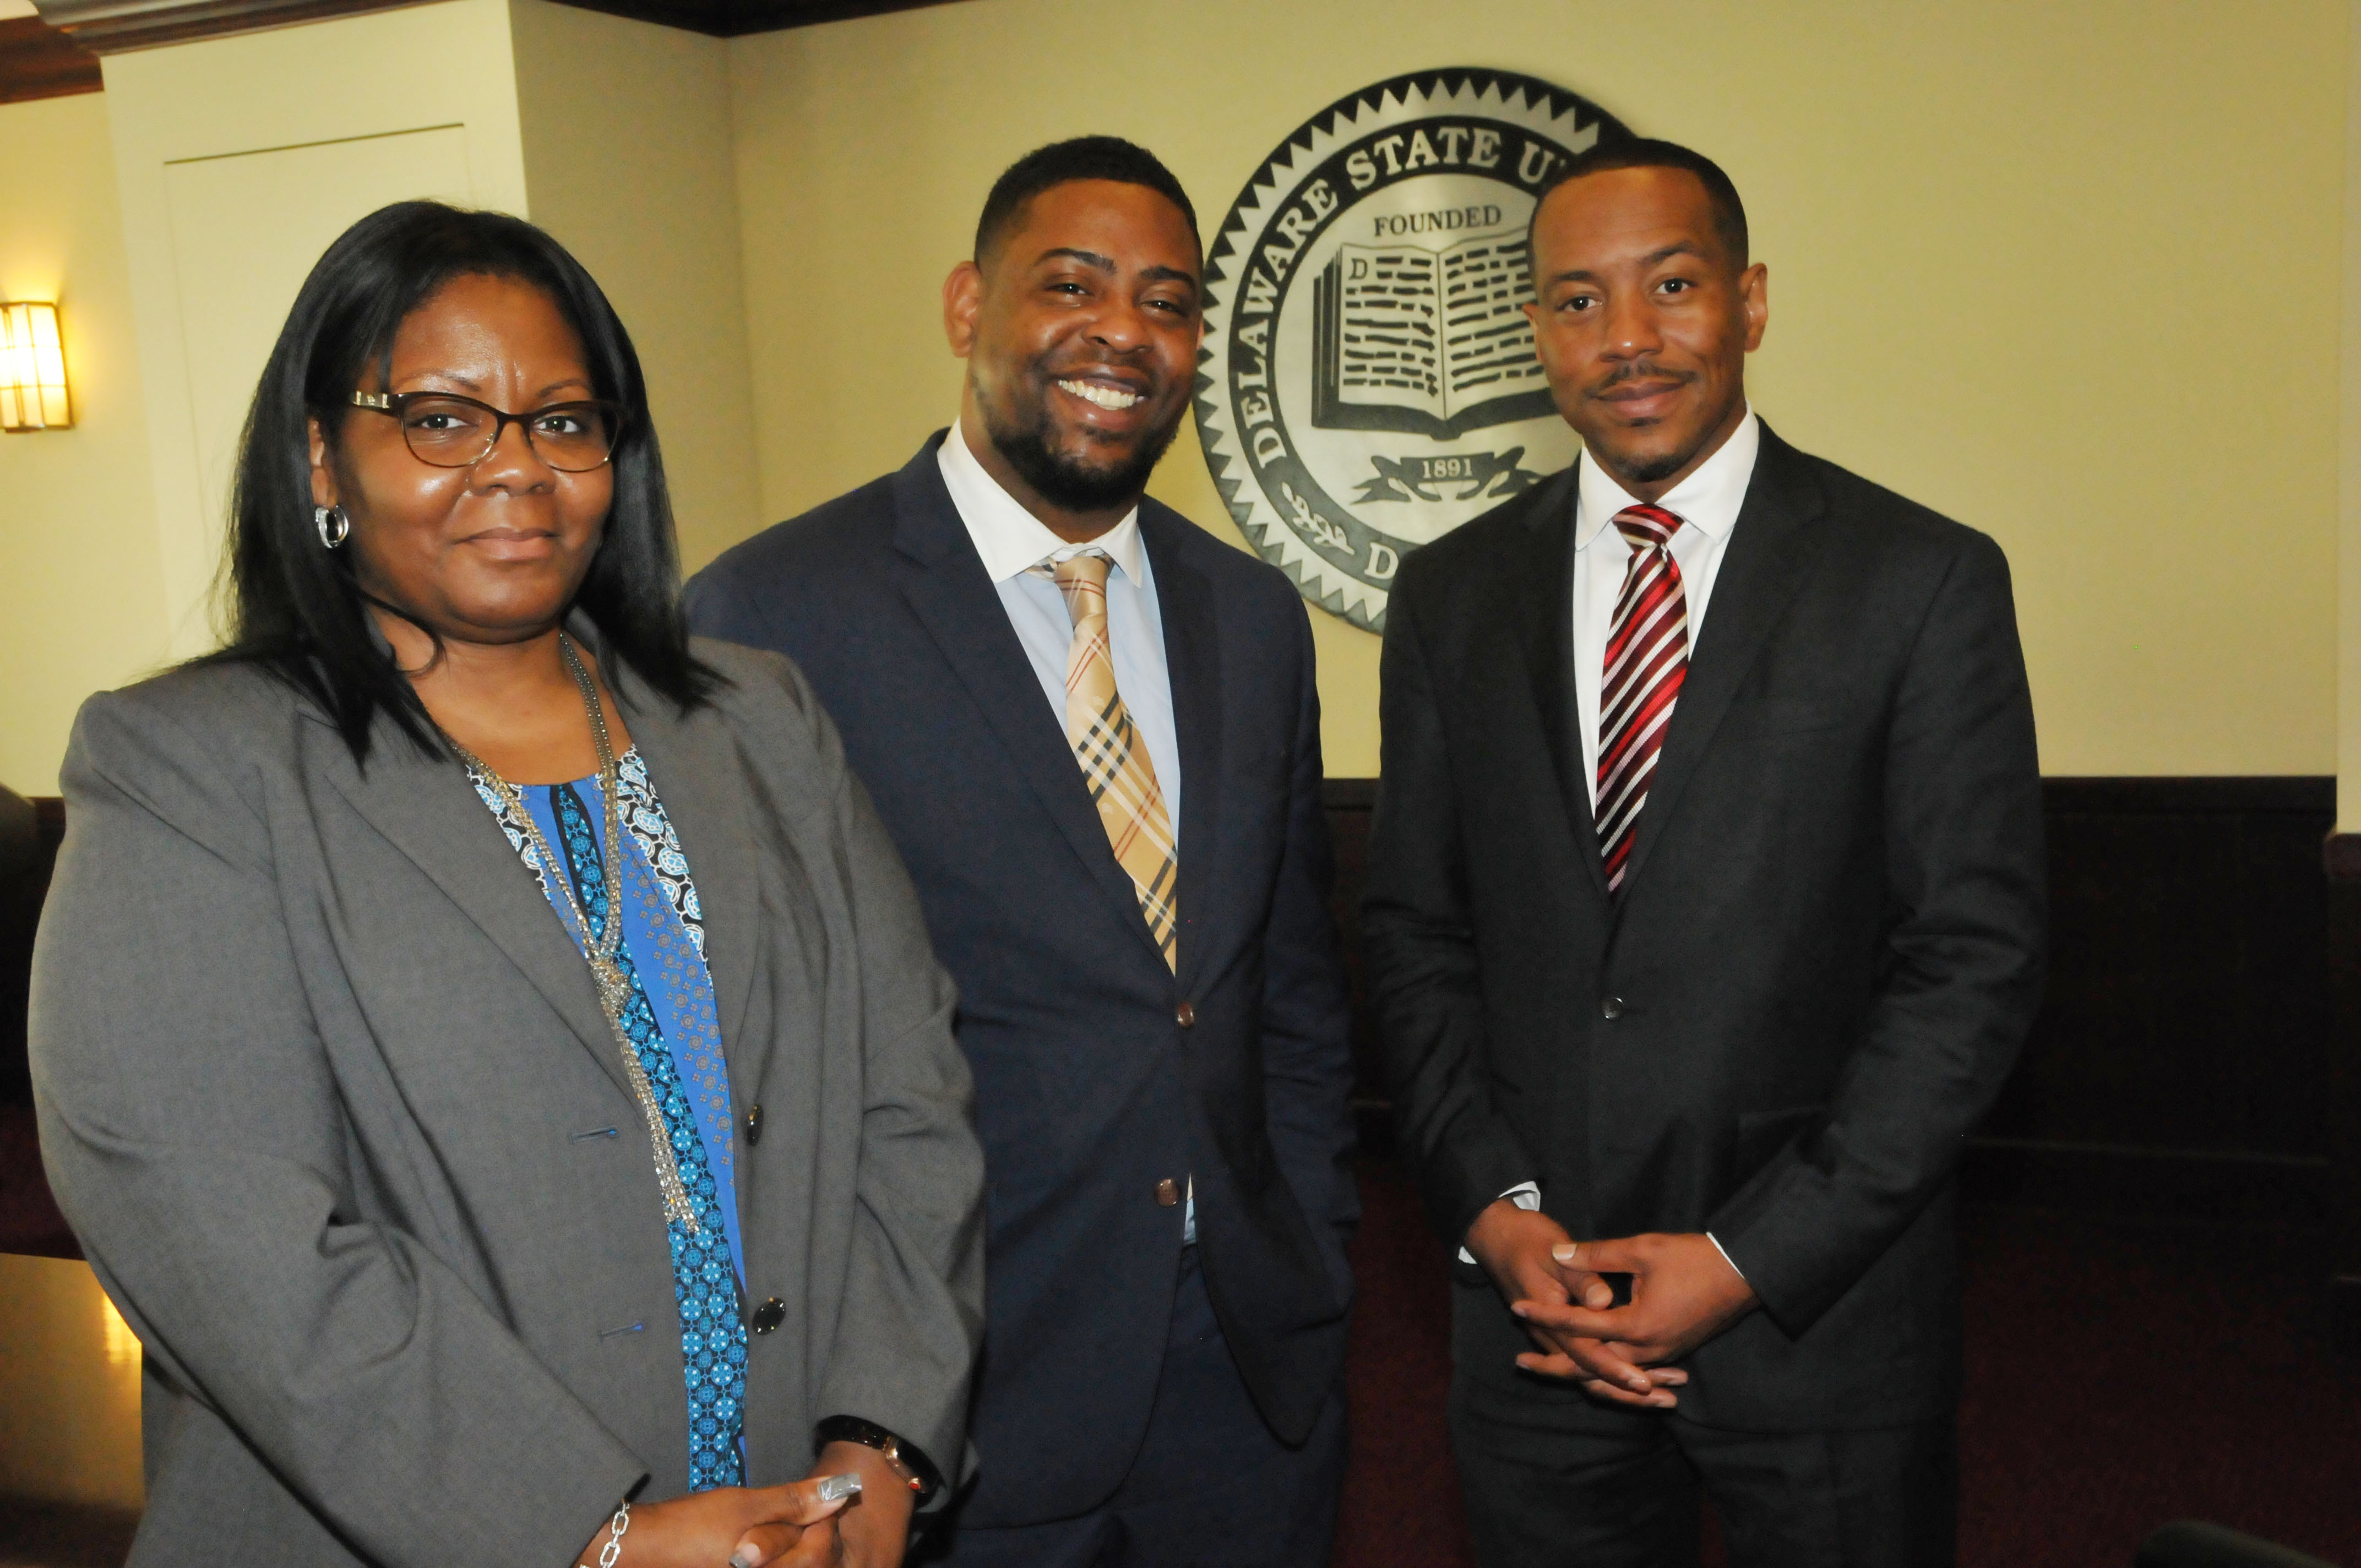 New Enrollment Management leadership: (l-r) Toshia Williams, executive director of Student Accounts; Al Dorsett, executive director of Financial Aid; and Kareem McLemore, executive director of Admissions. They will all report directly to Antonio Boyle, vice president of Enrollment Management.